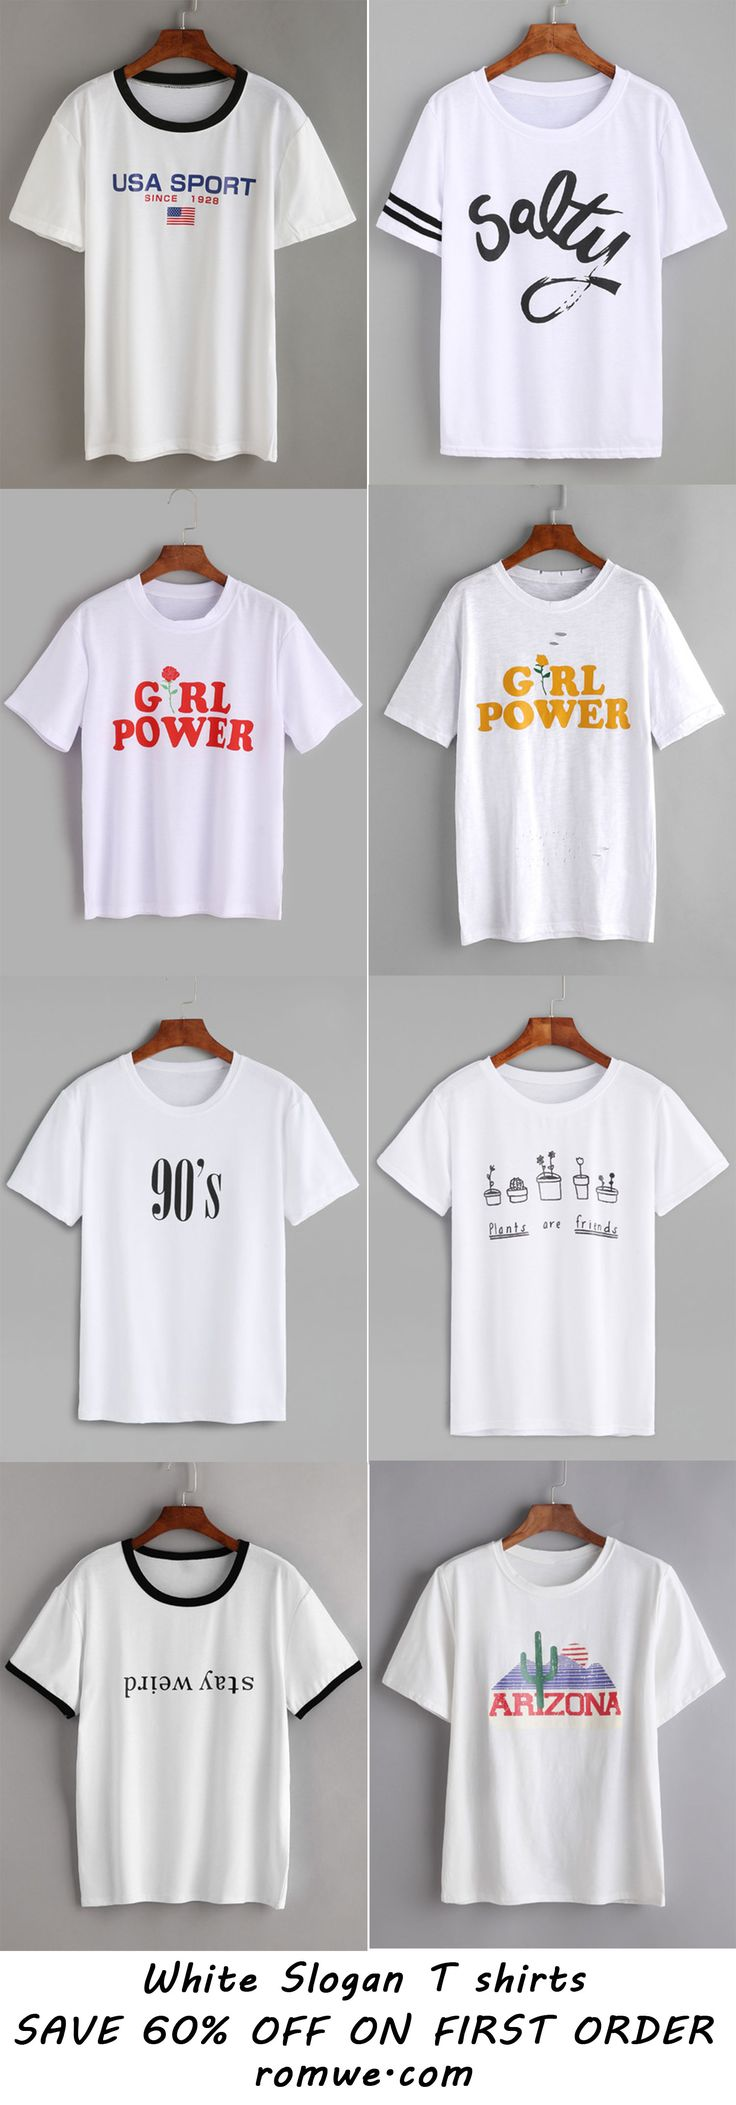 Cool Slogan T shirts with soft material and low price begin at US$3.99 from romwe.com